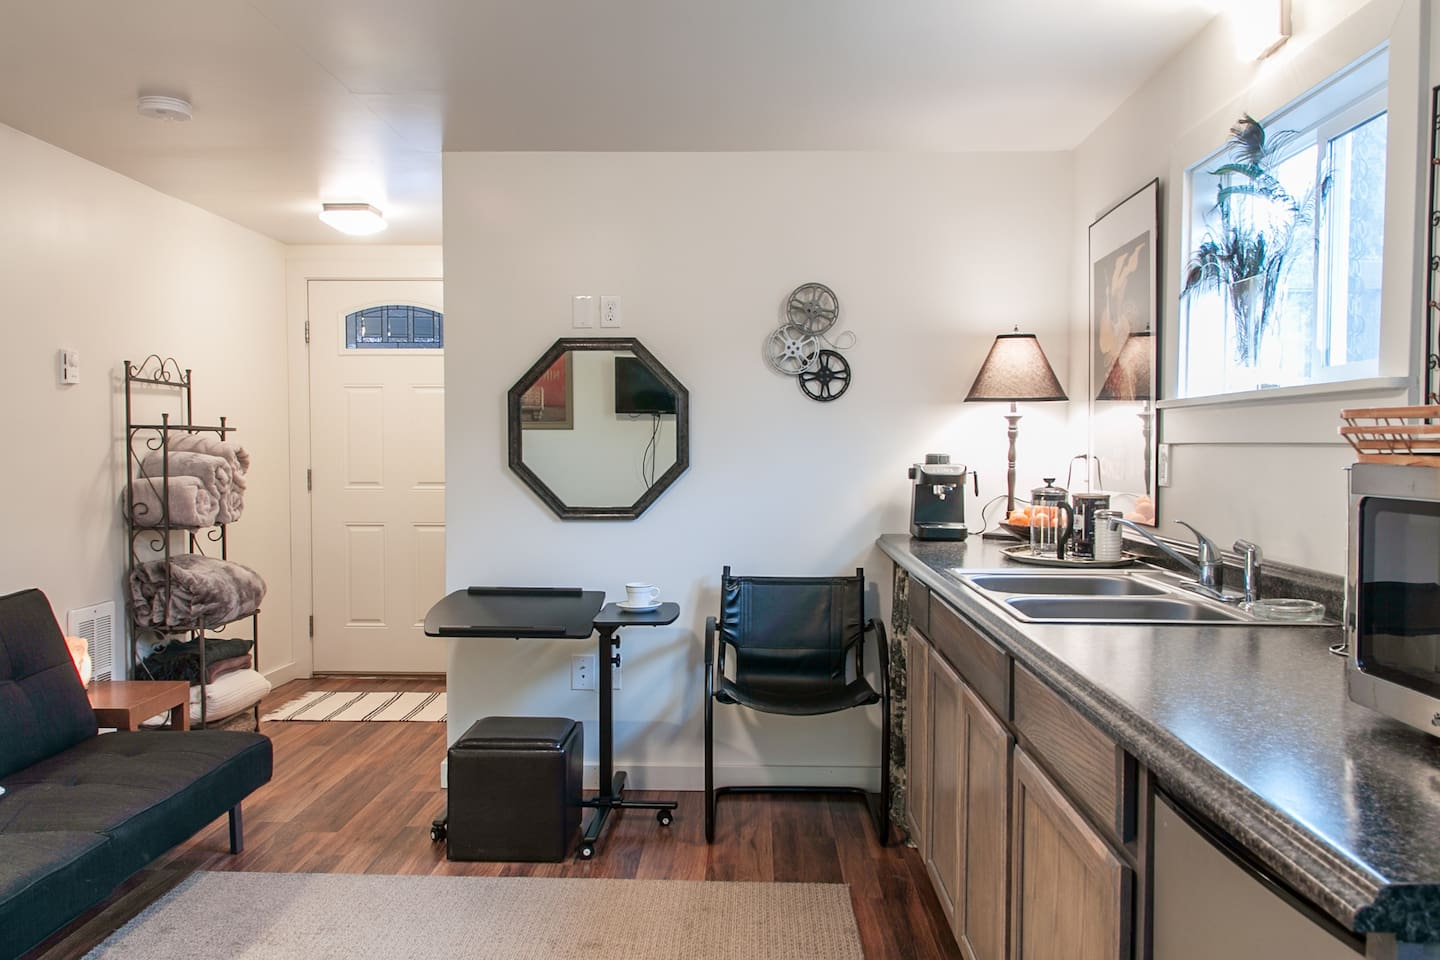 The Parkside Studio provides everything you need for your Central Oregon stay.  Just bring your toothbrush and enjoy.